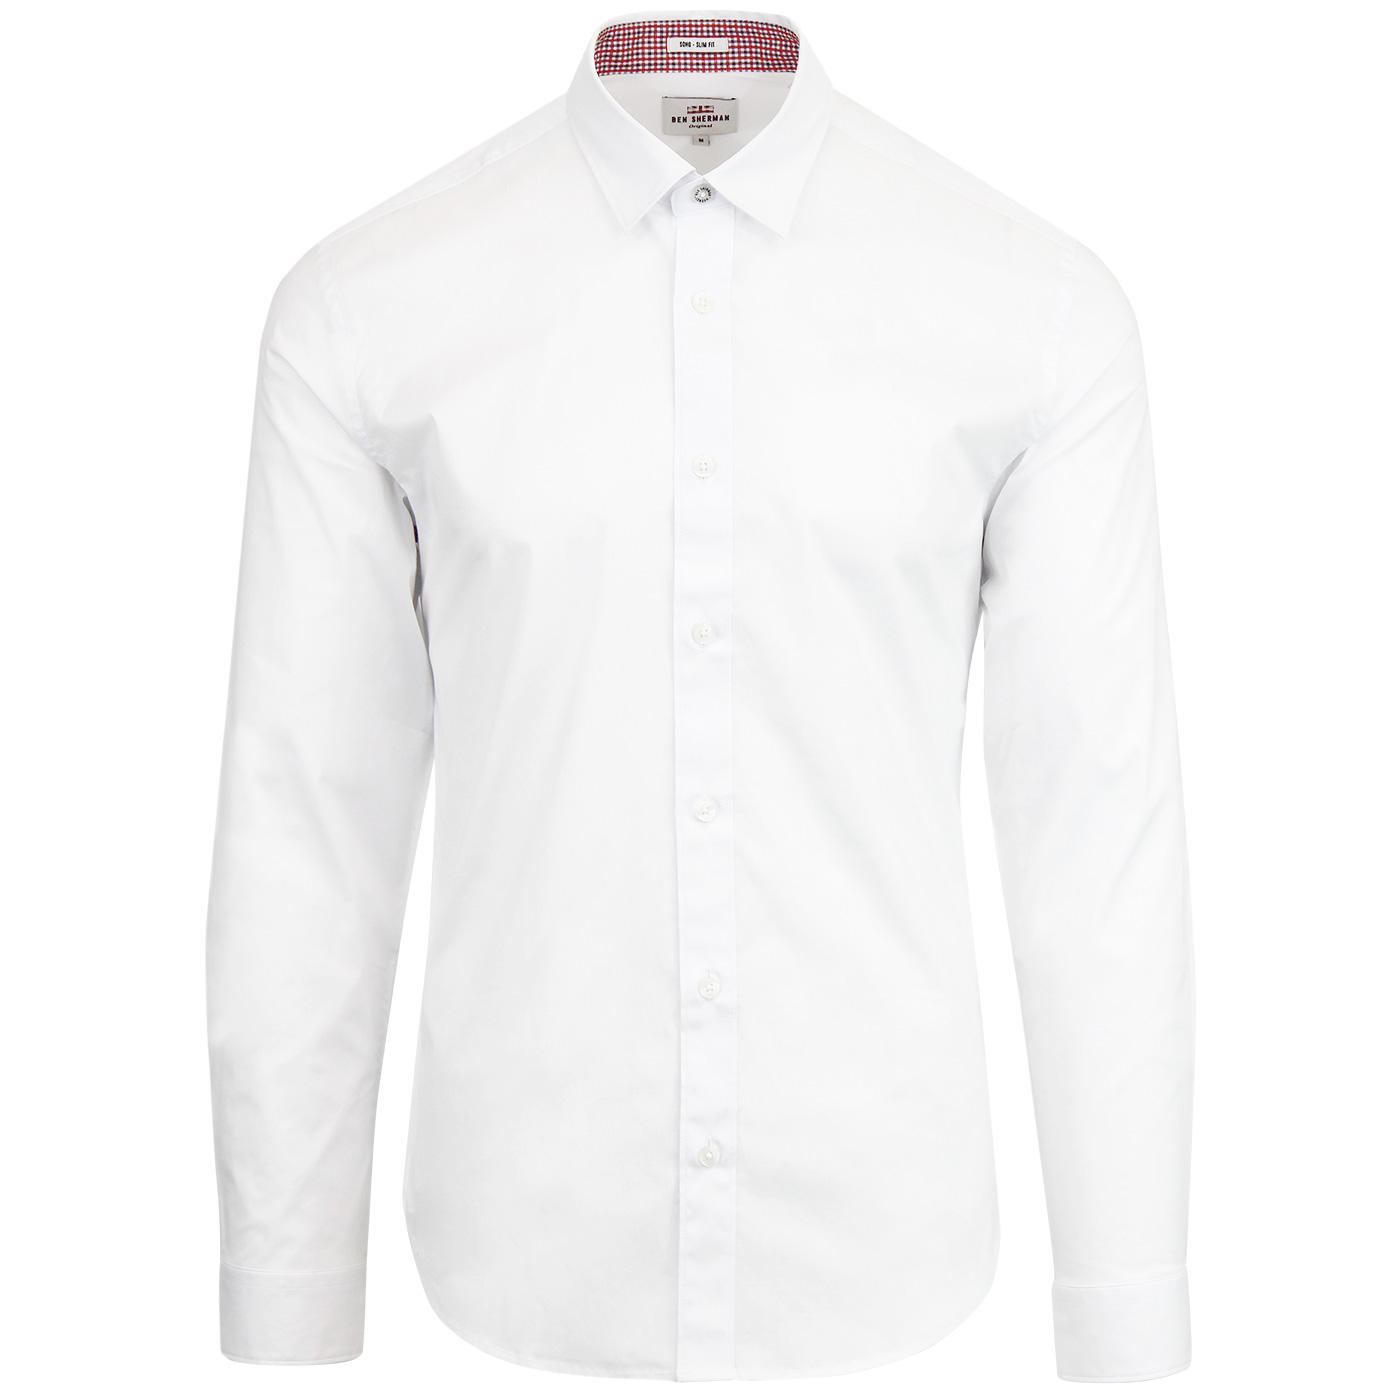 BEN SHERMAN 60s Mod Stretch Poplin Shirt - White